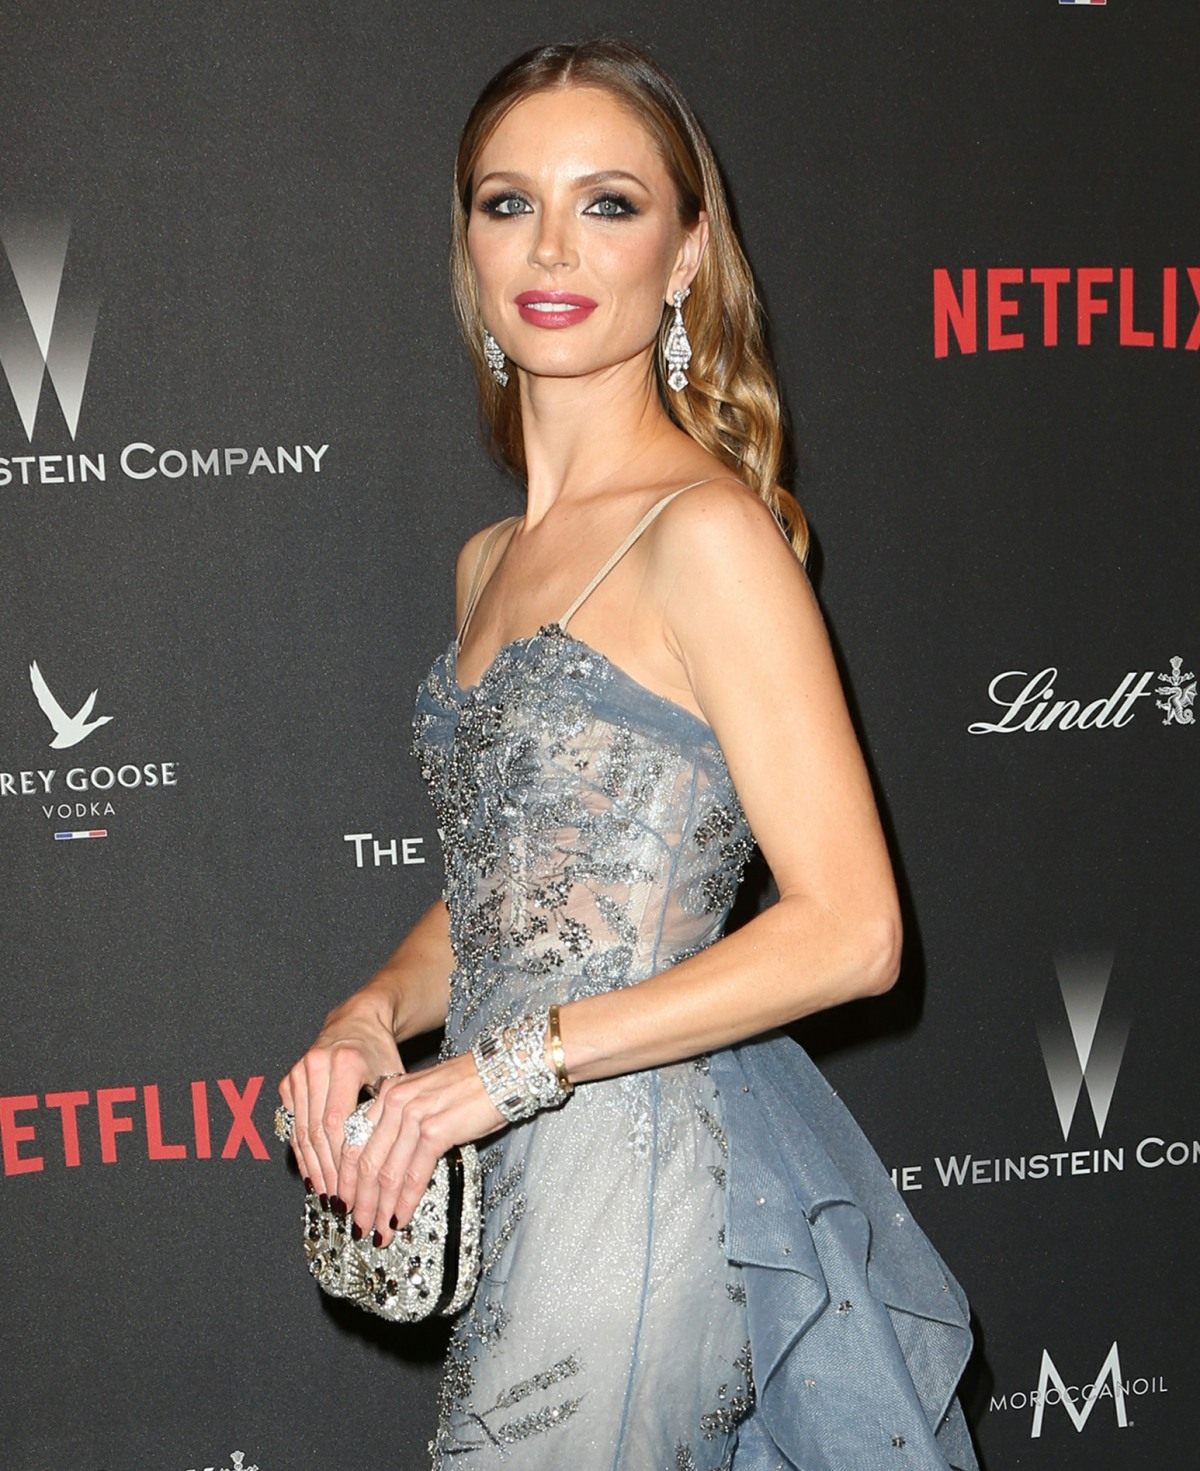 The Weinstein Company And Netflix Golden Globes Party